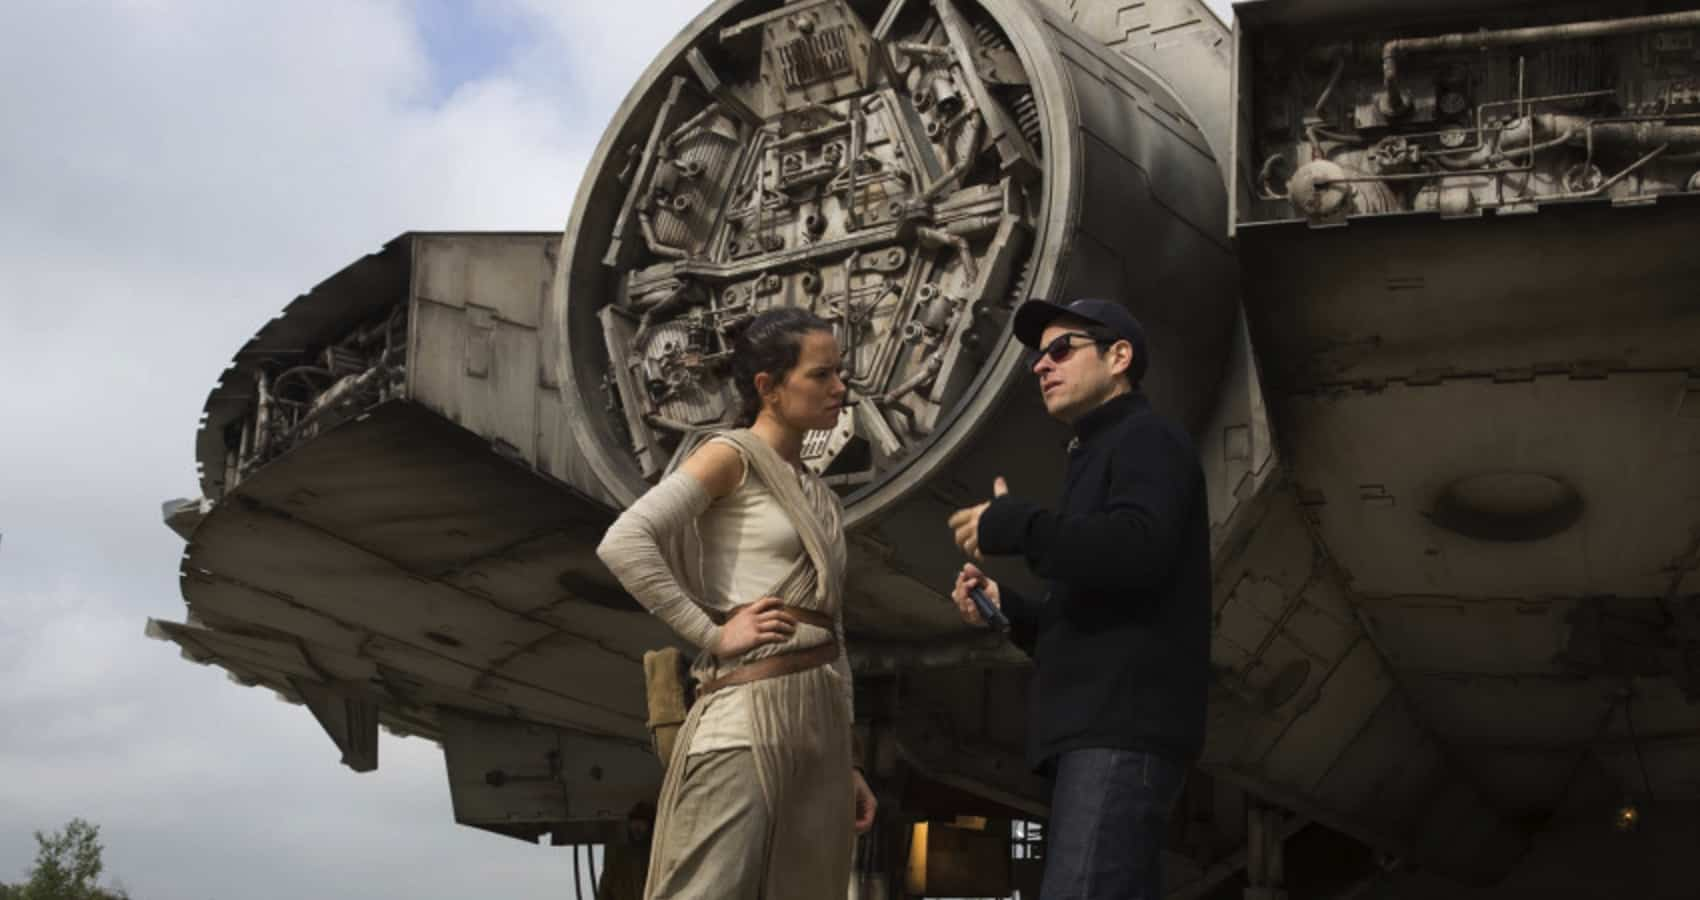 J.J. Abrams directing Daisy Ridley for a scene in Star Wars: The Force Awakens